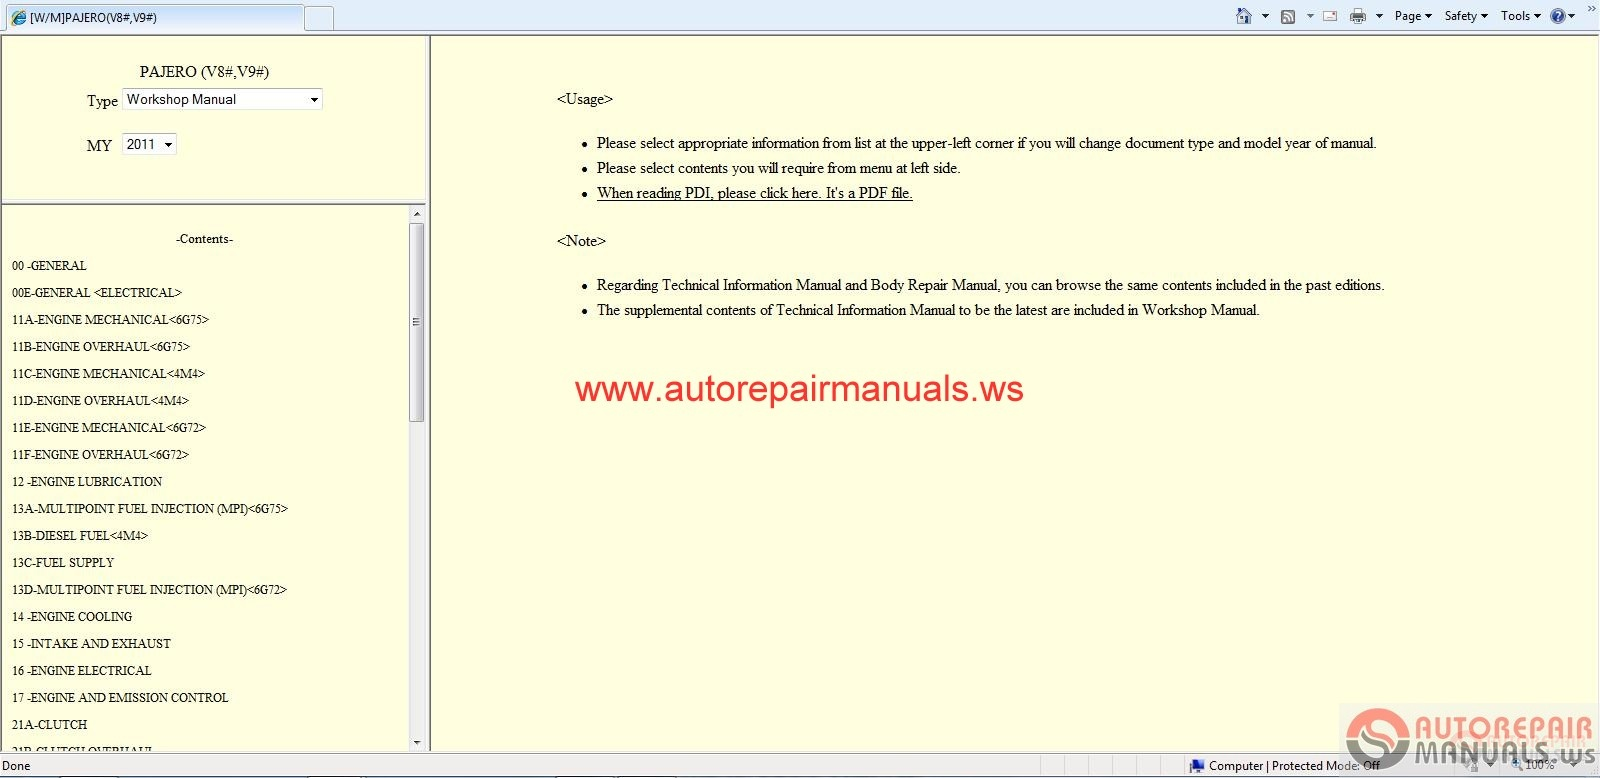 Mitsubishi_Pajero_2011_Service_Manual1 mitsubishi pajero 2011 workshop manual auto repair manual forum mitsubishi pajero wiring diagram download at bakdesigns.co